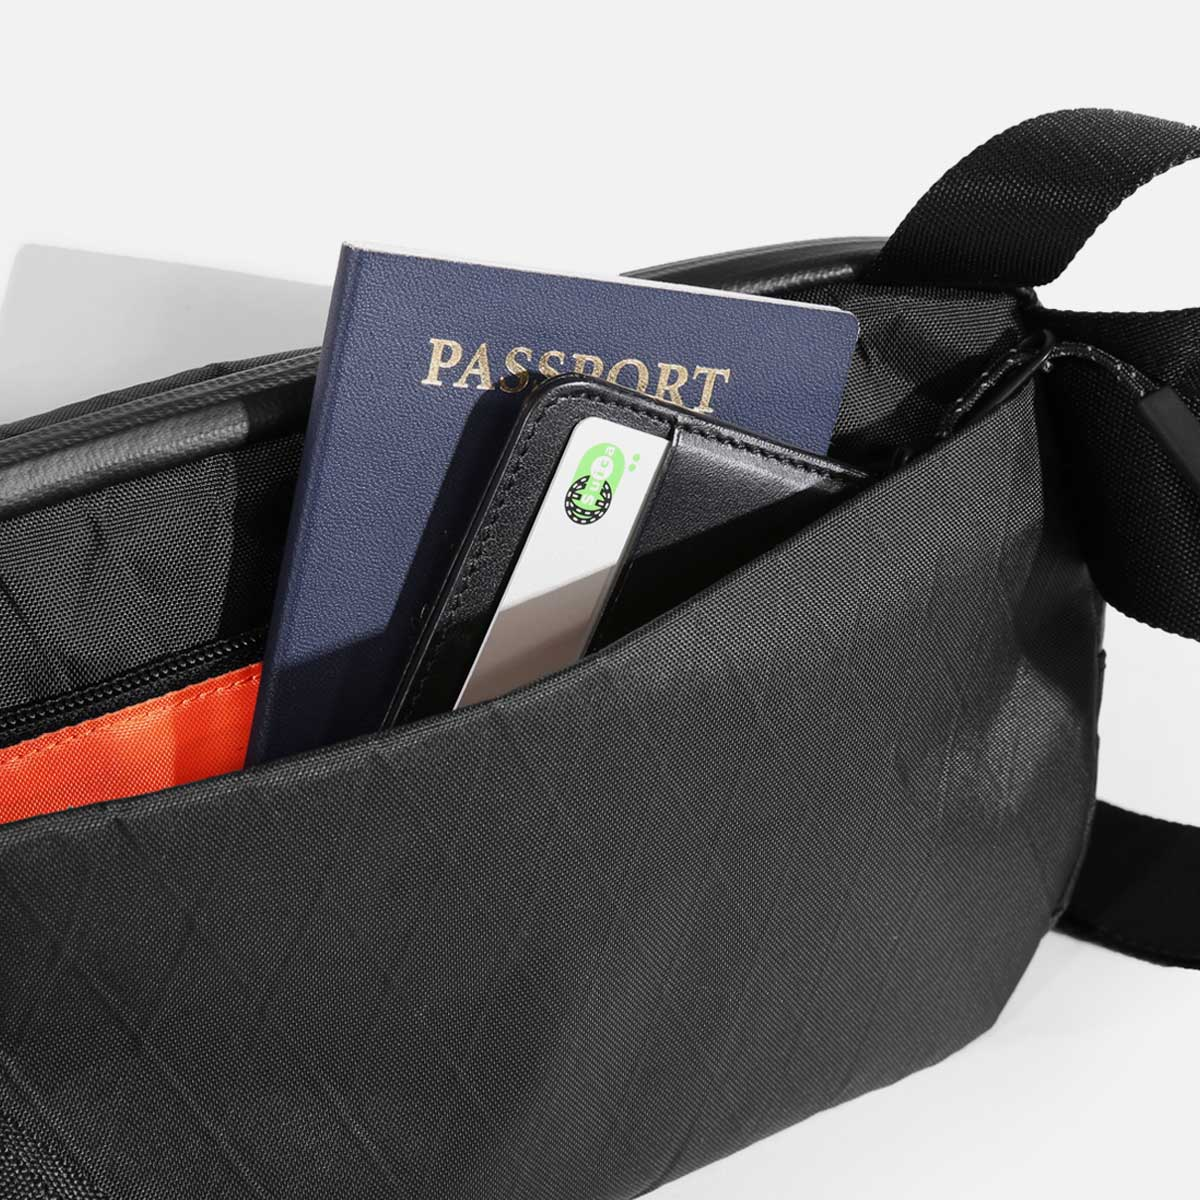 Keep your passport or wallet safe and secure.